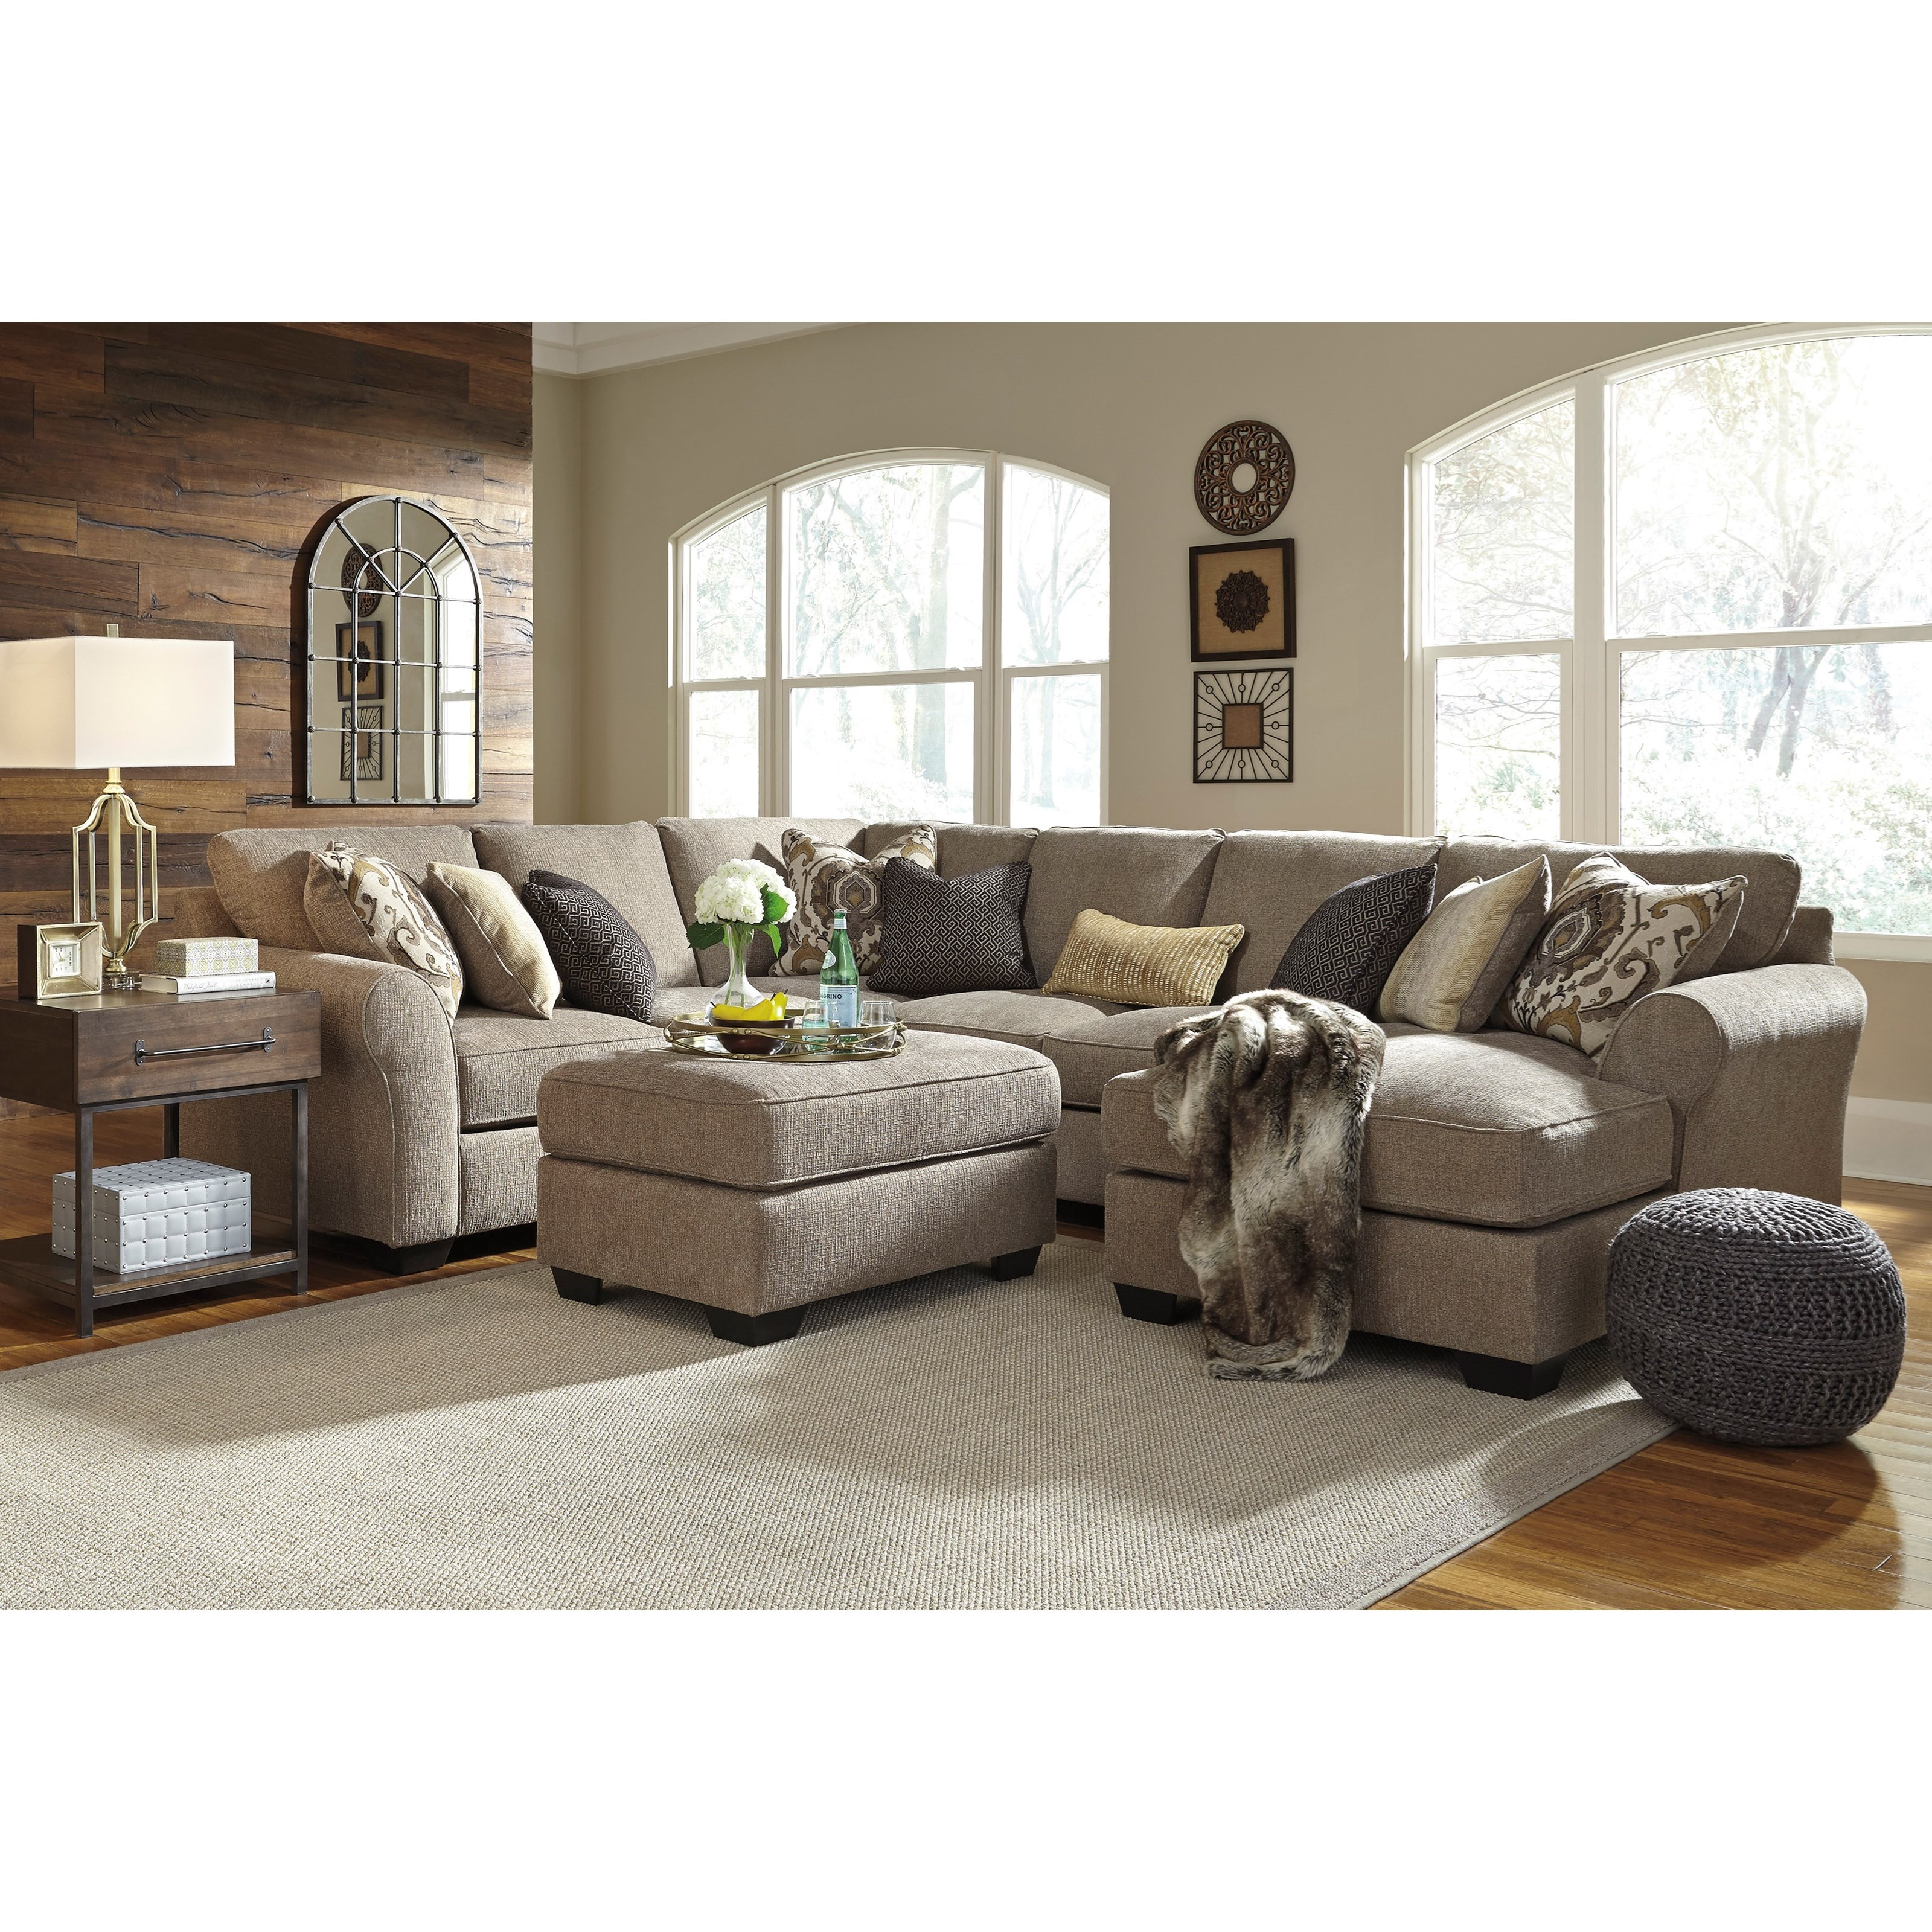 Pantomine 4 piece sectional with right chaise becker for 4 piece sectional with chaise